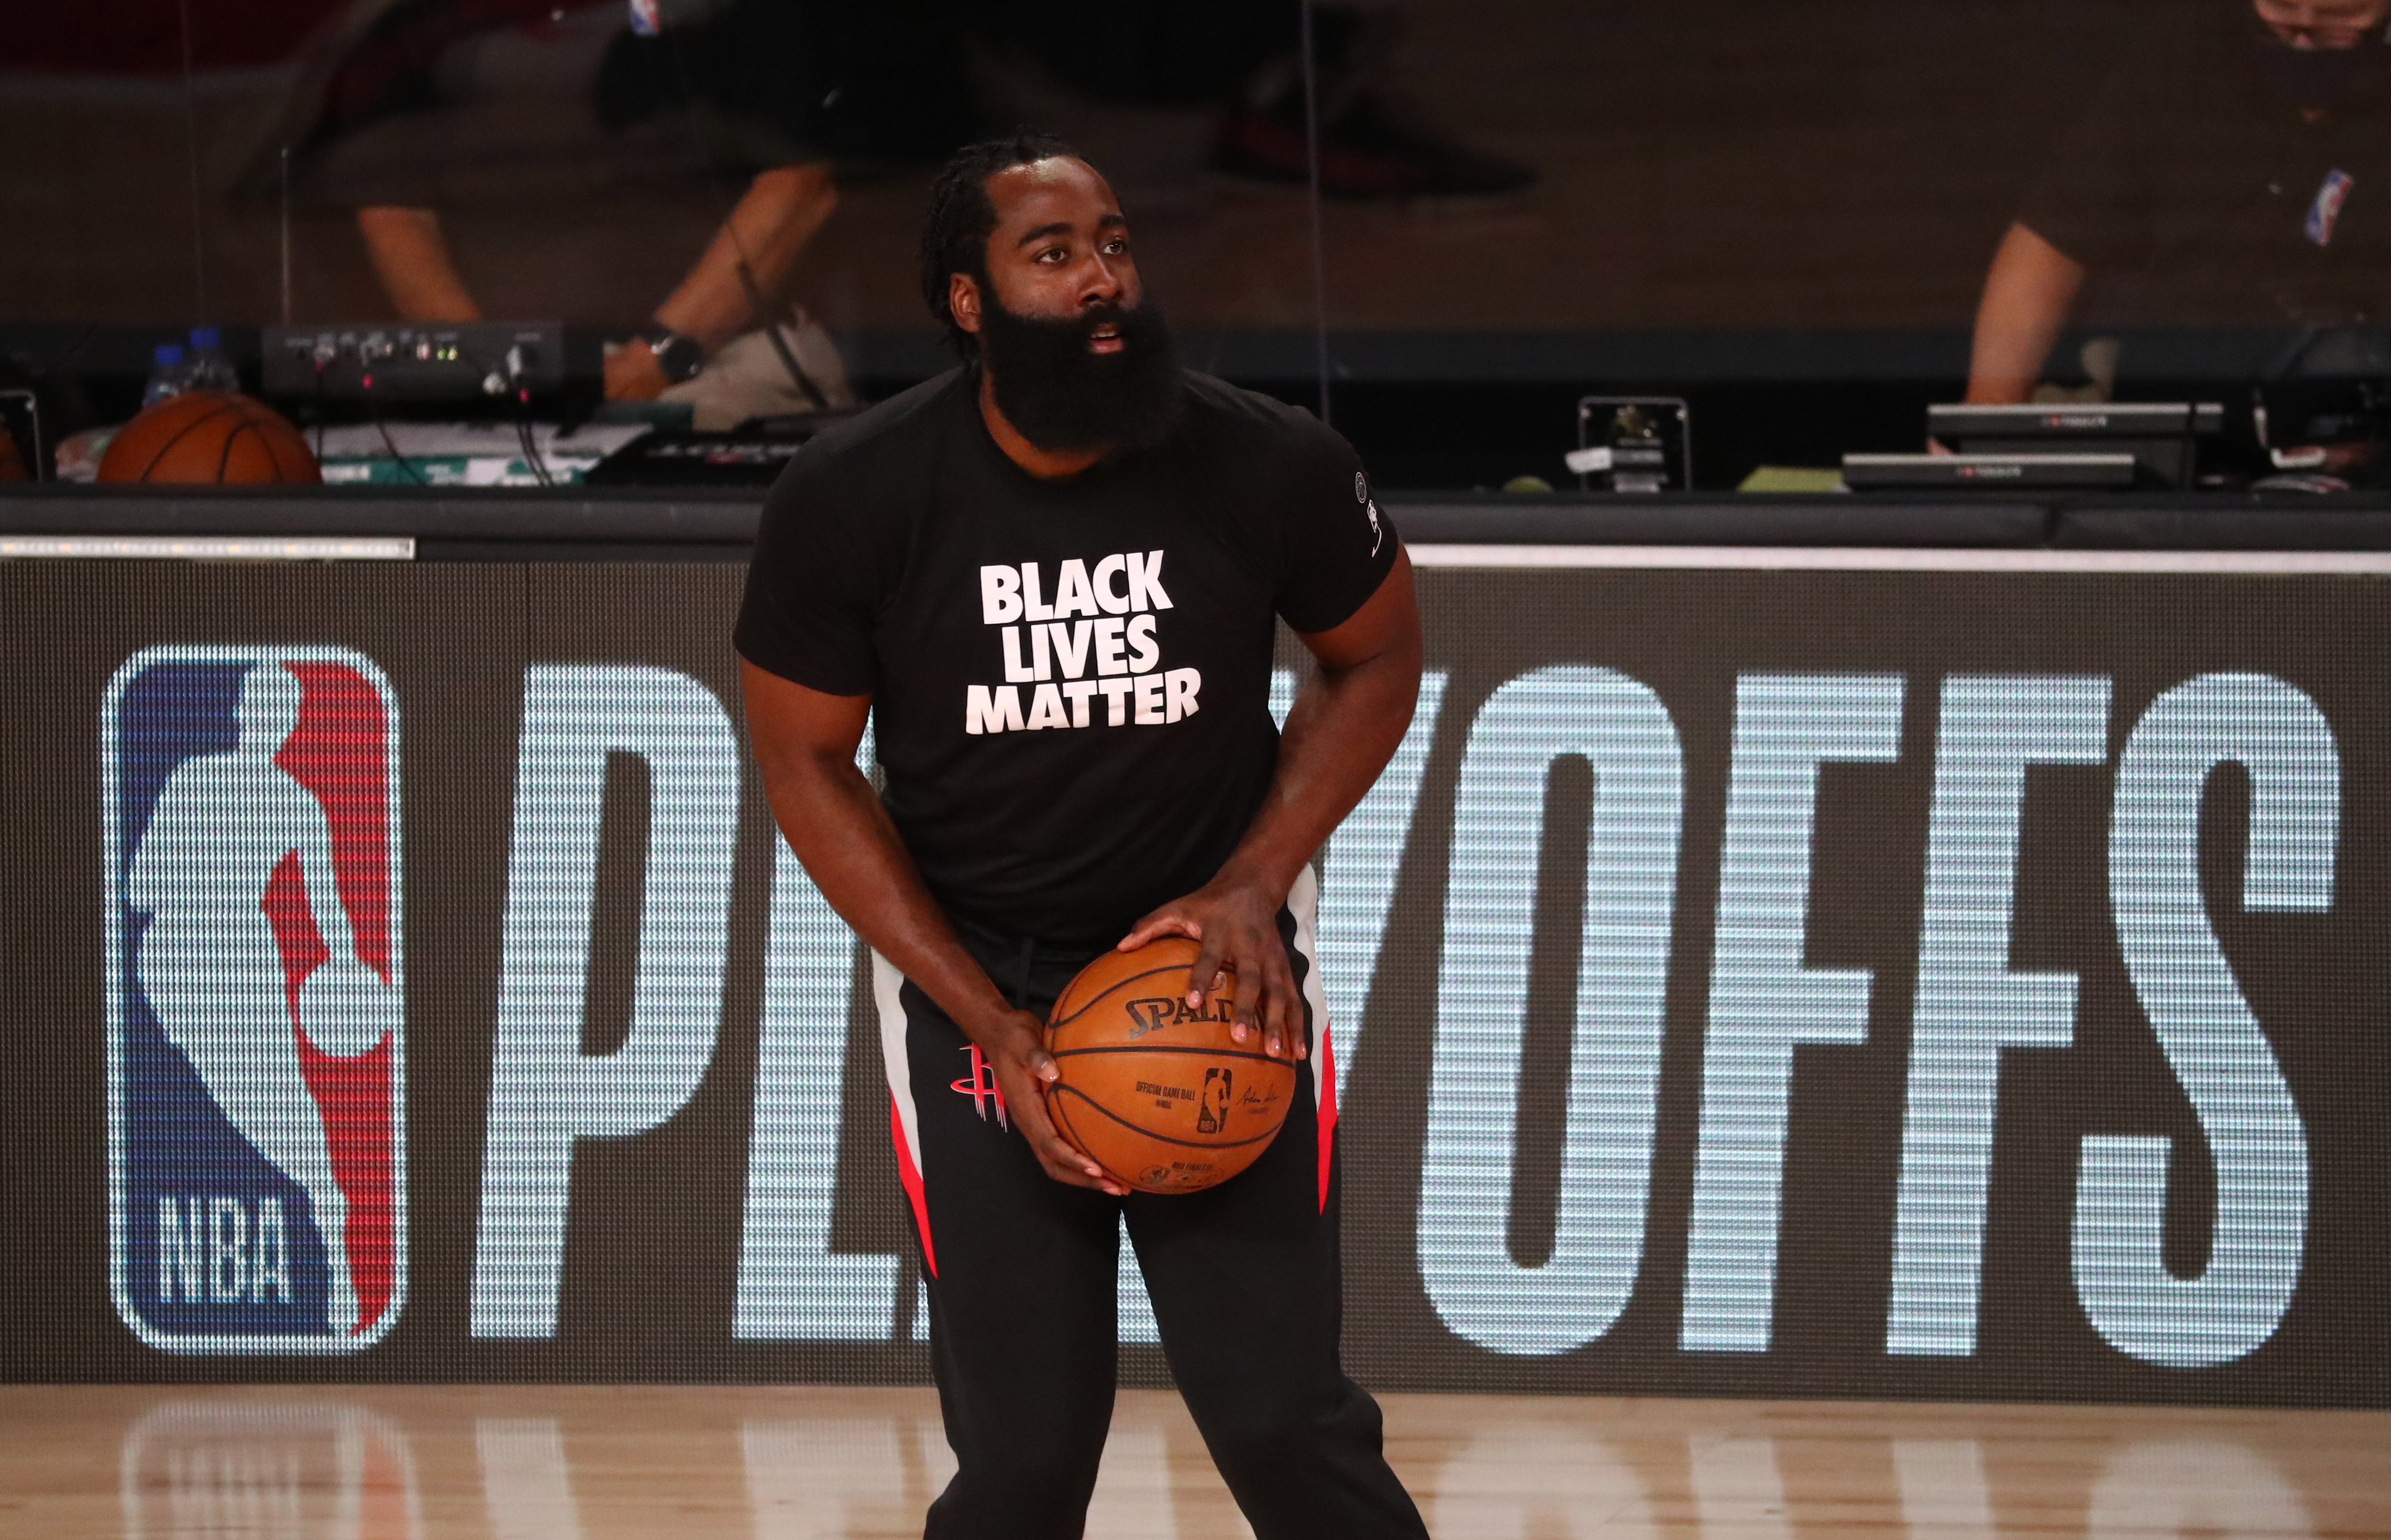 James Harden actually turned down over $50 million per year contract extension with Rockets